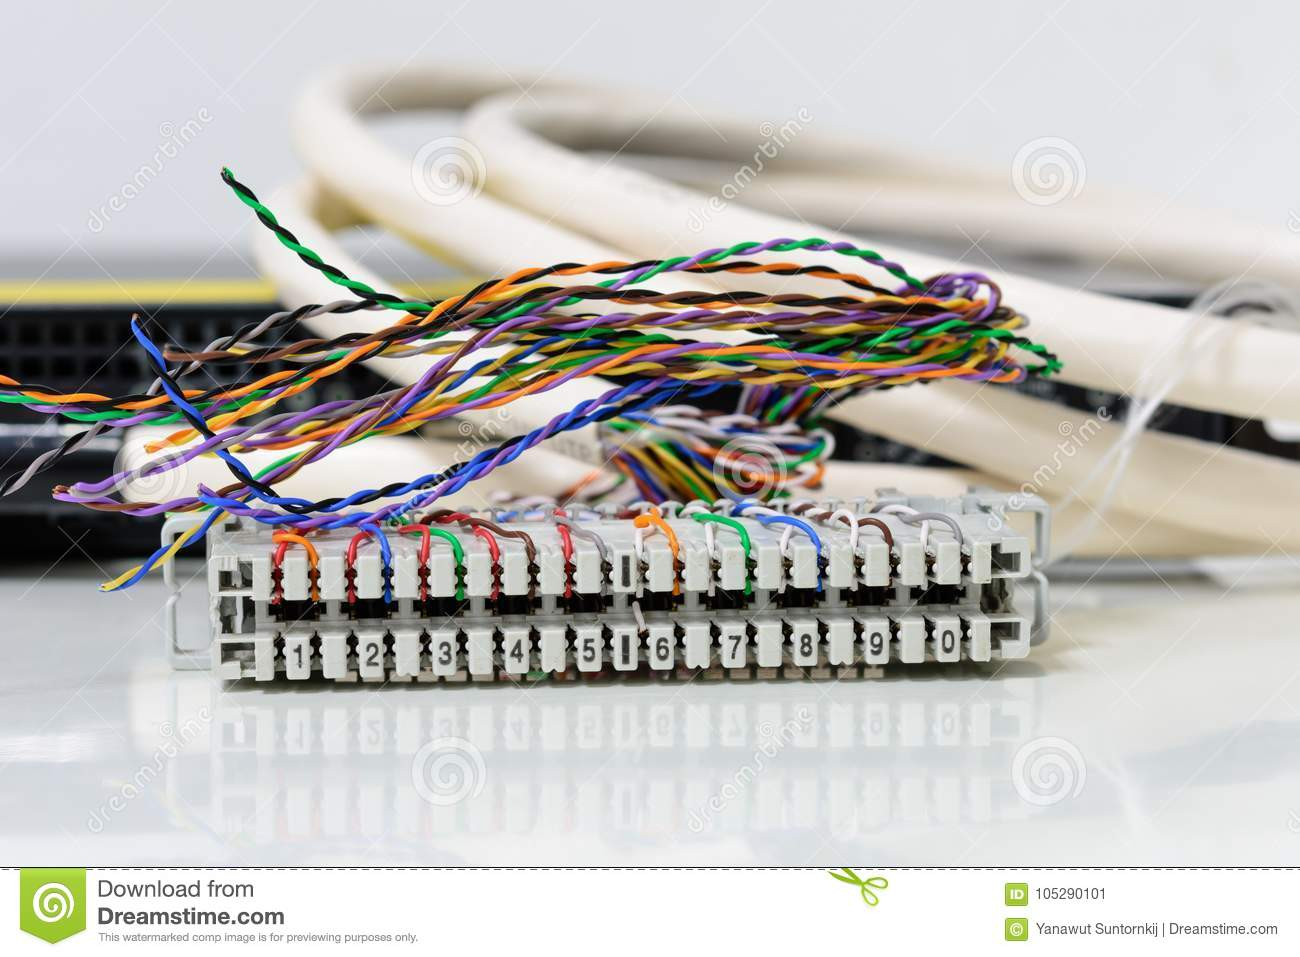 ip telephony system, telephone cabling patch panel with twisted pairs cables  for digital and analog